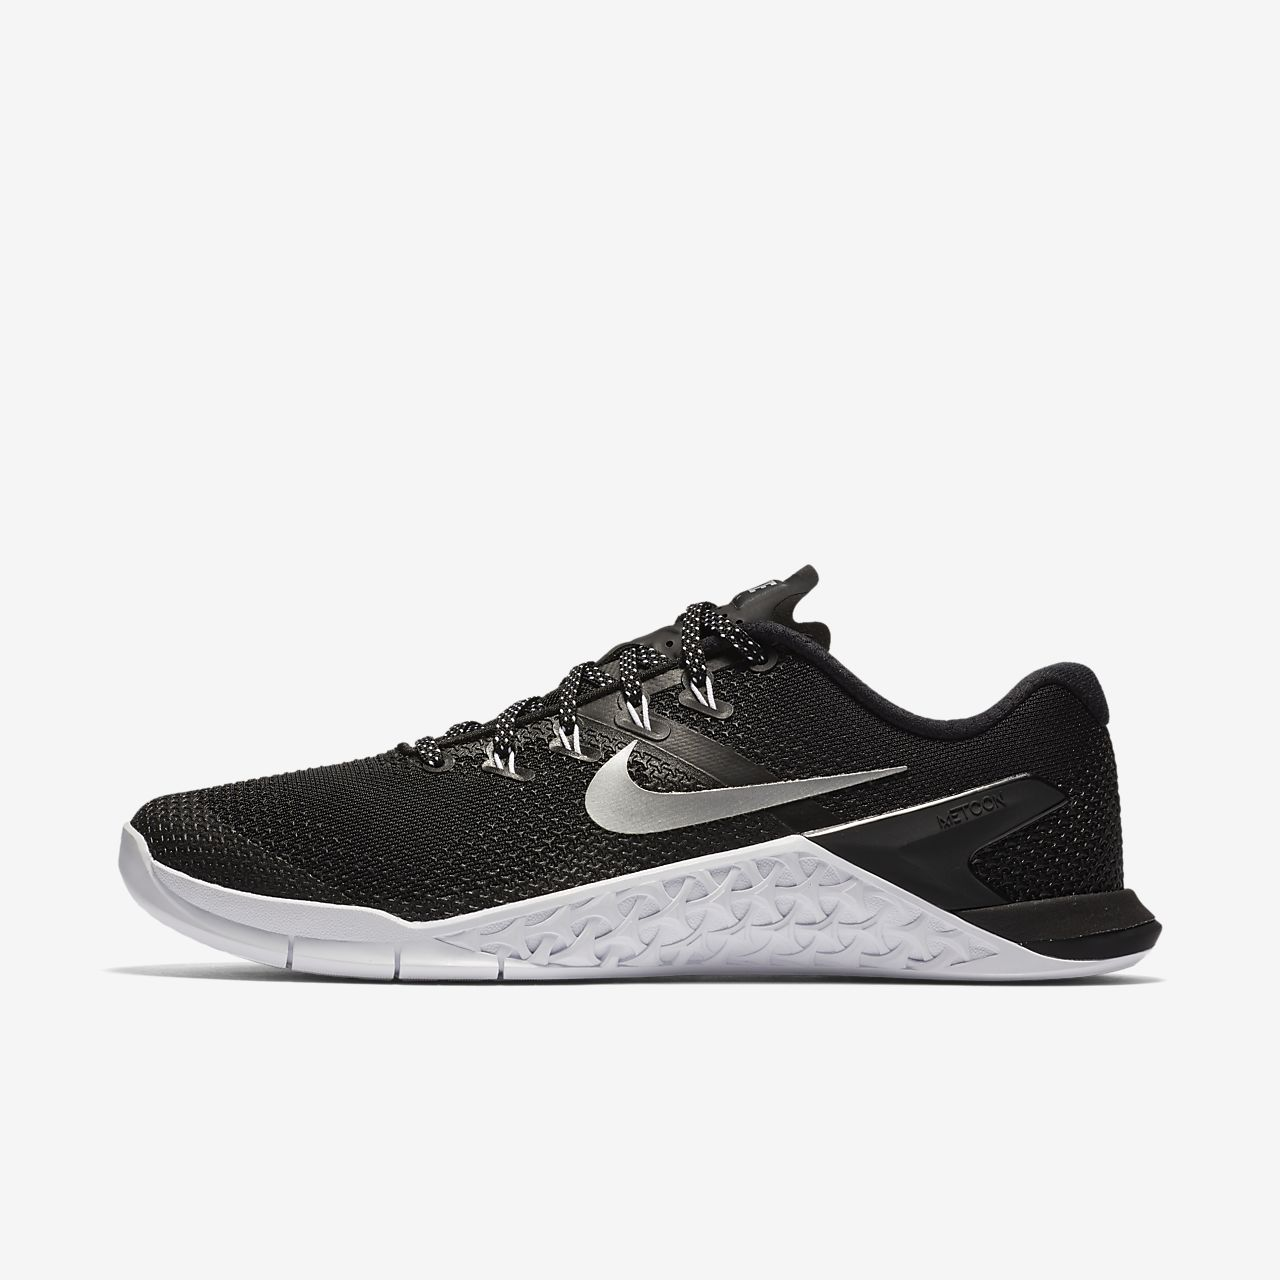 a75a487d5fd5 Women s Cross Training Weightlifting Shoe. Nike Metcon 4